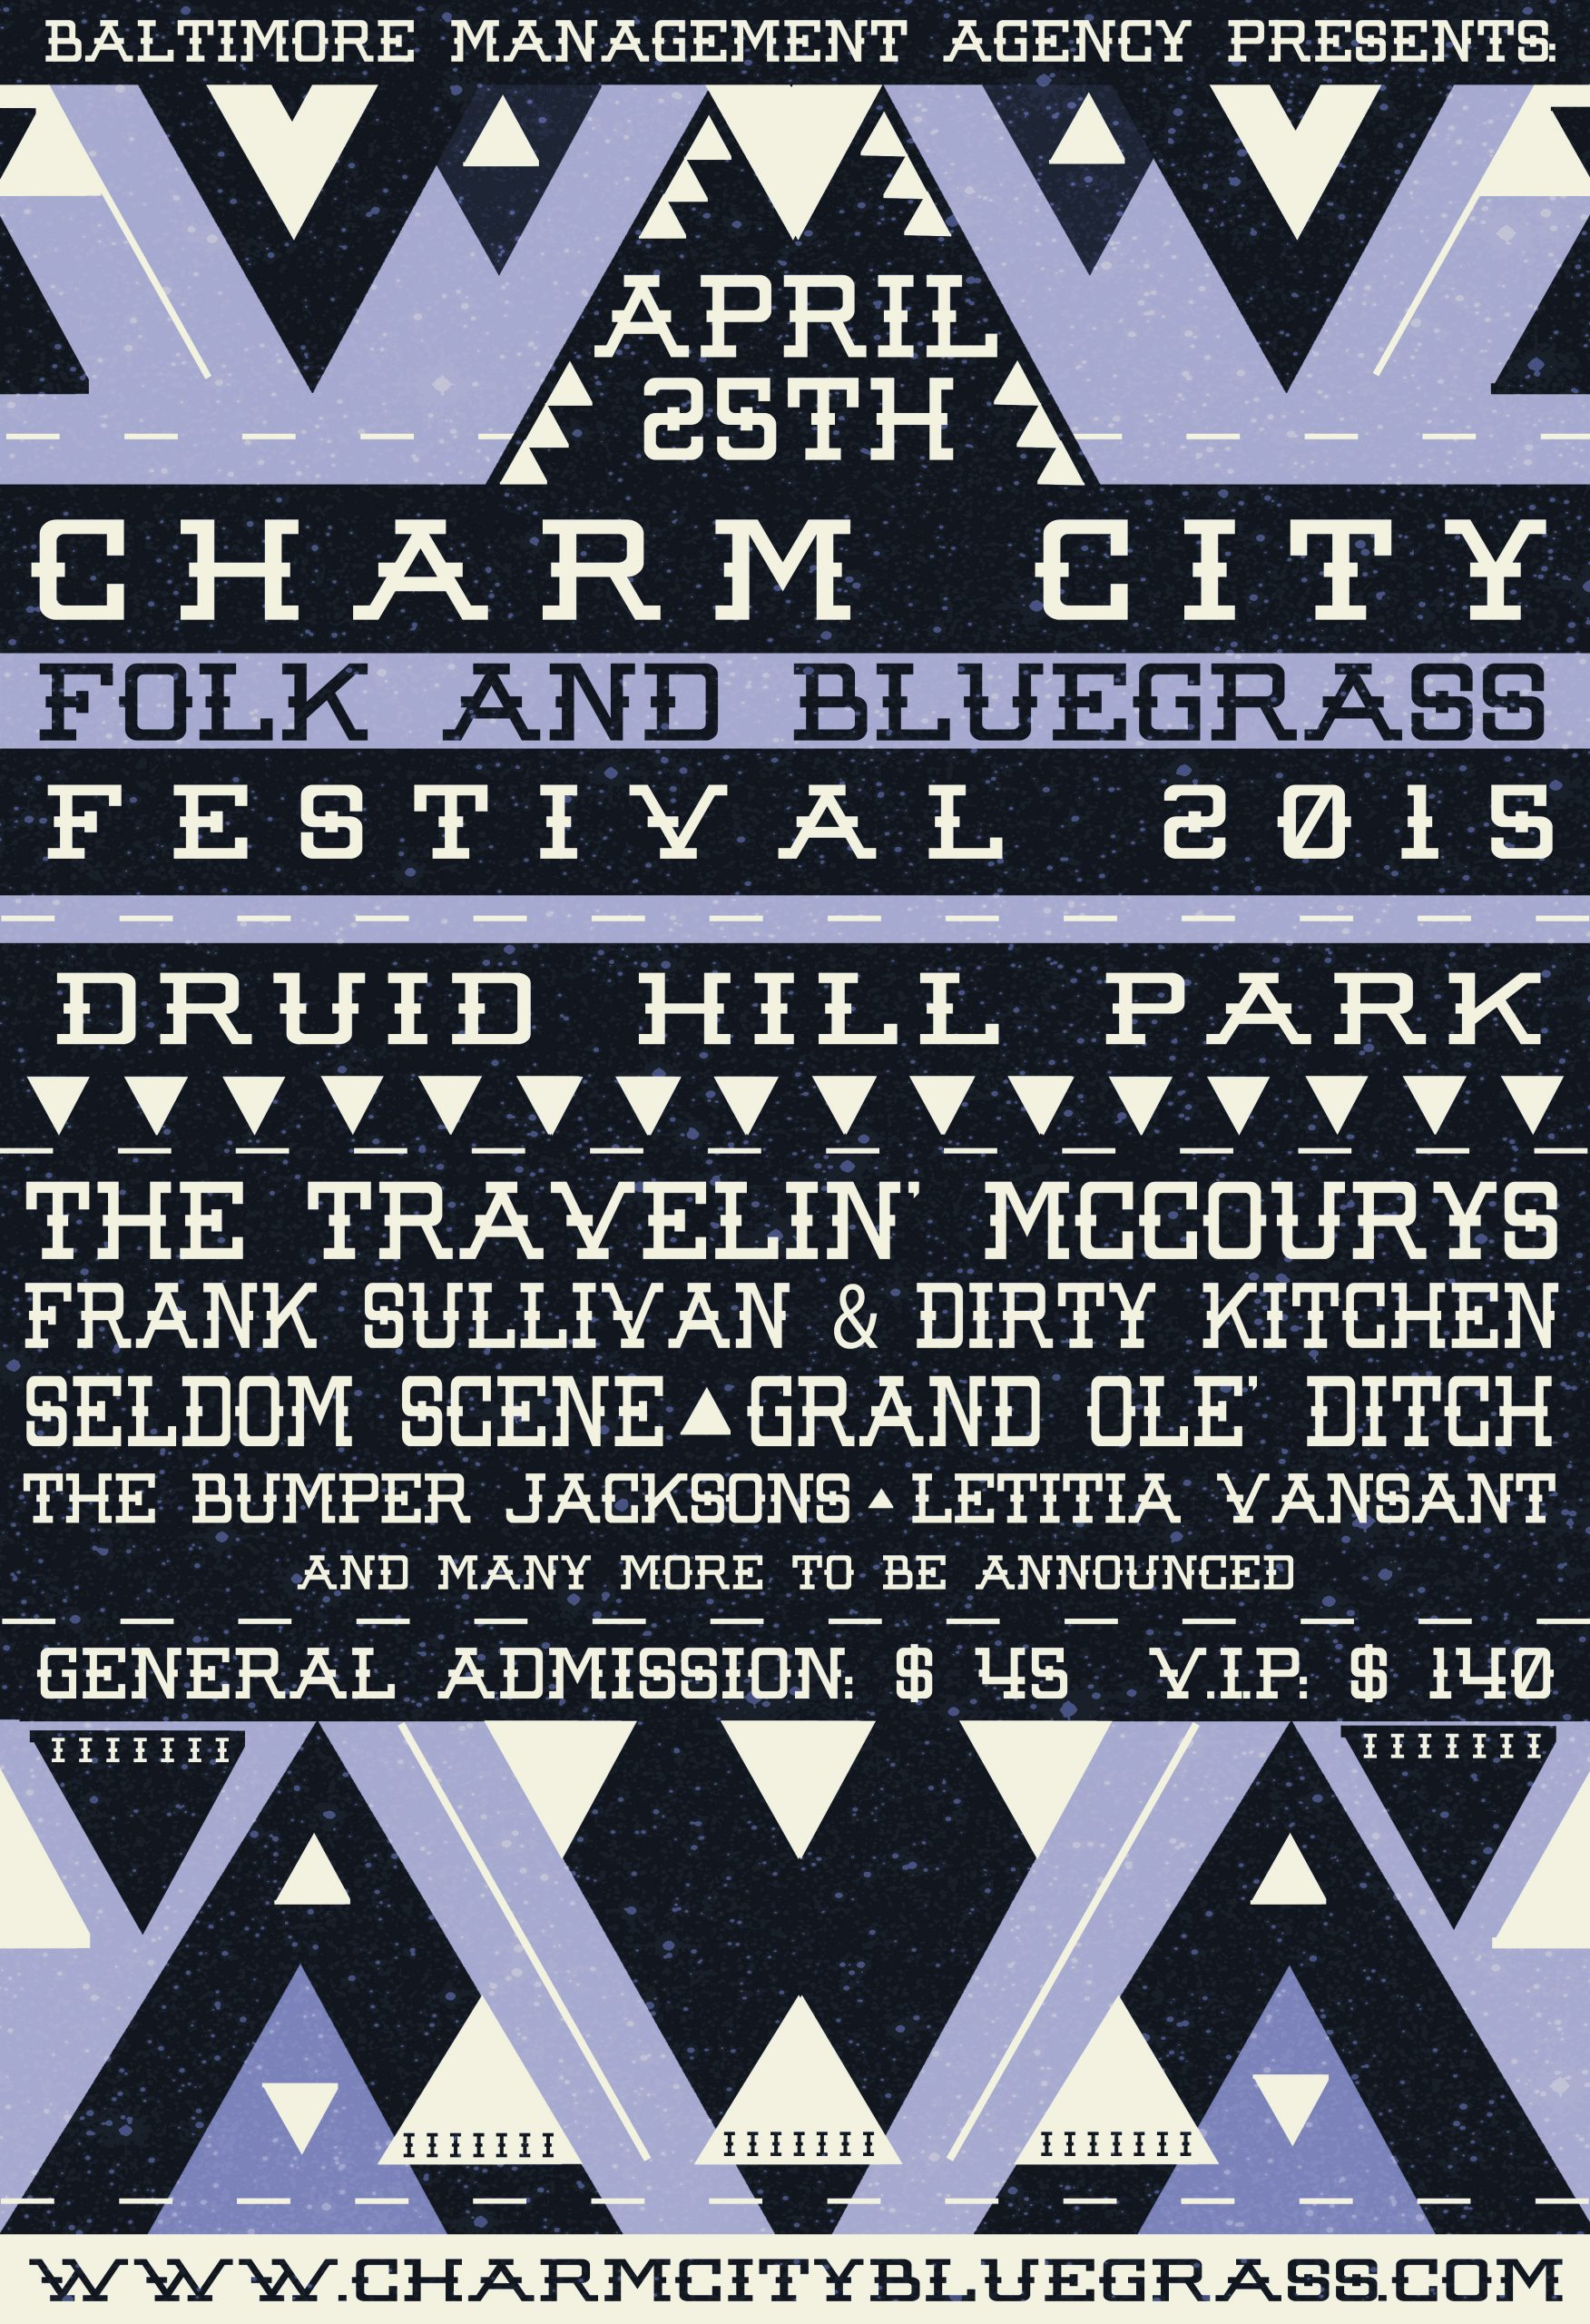 Charm City Folk and Bluegrass Festival Announces Initial Lineup